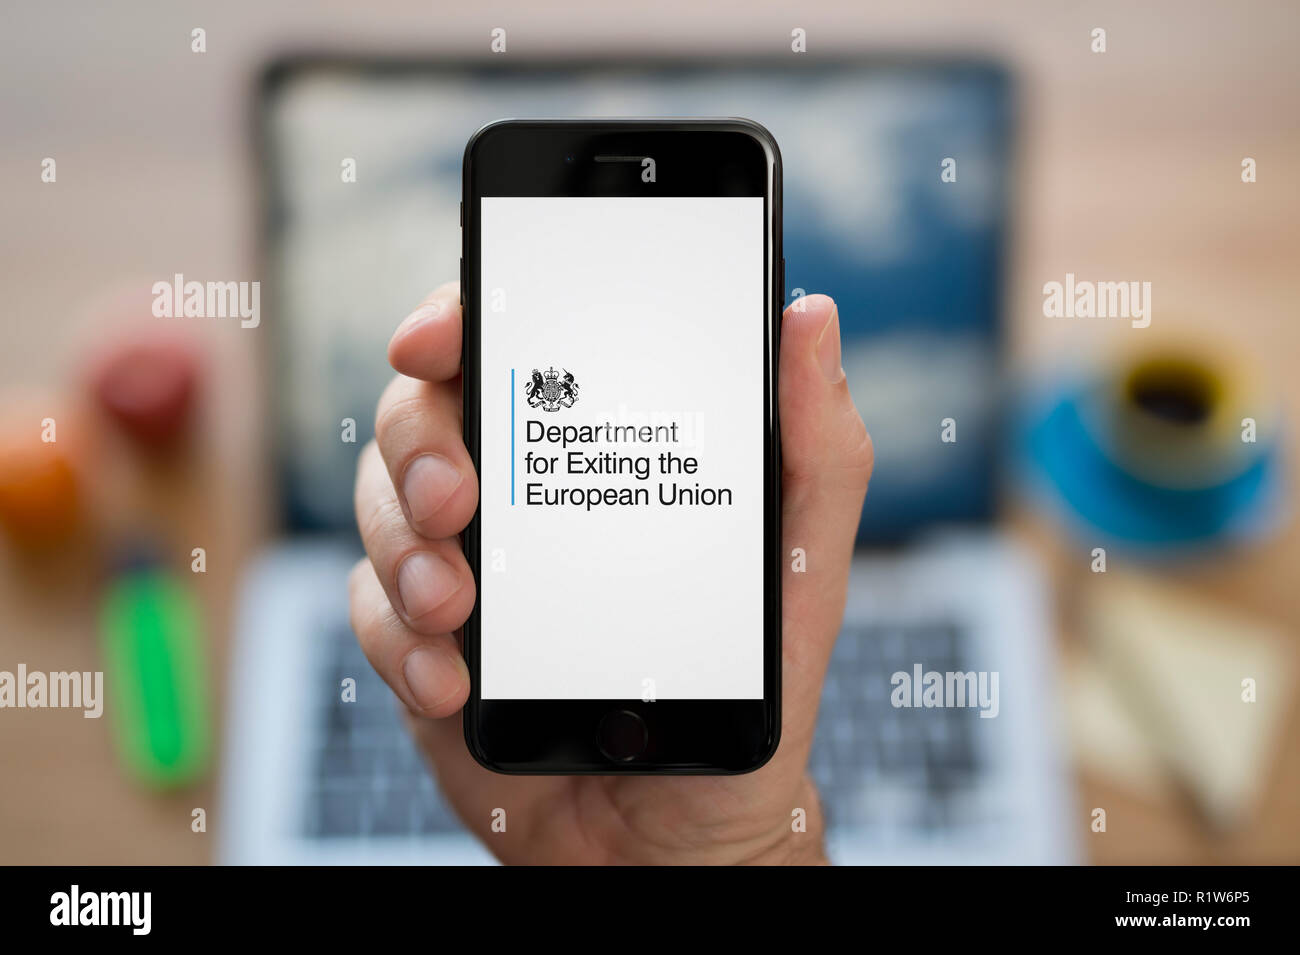 A man looks at his iPhone which displays the Department for Exiting the European Union logo, while sat at his computer desk (Editorial use only). - Stock Image